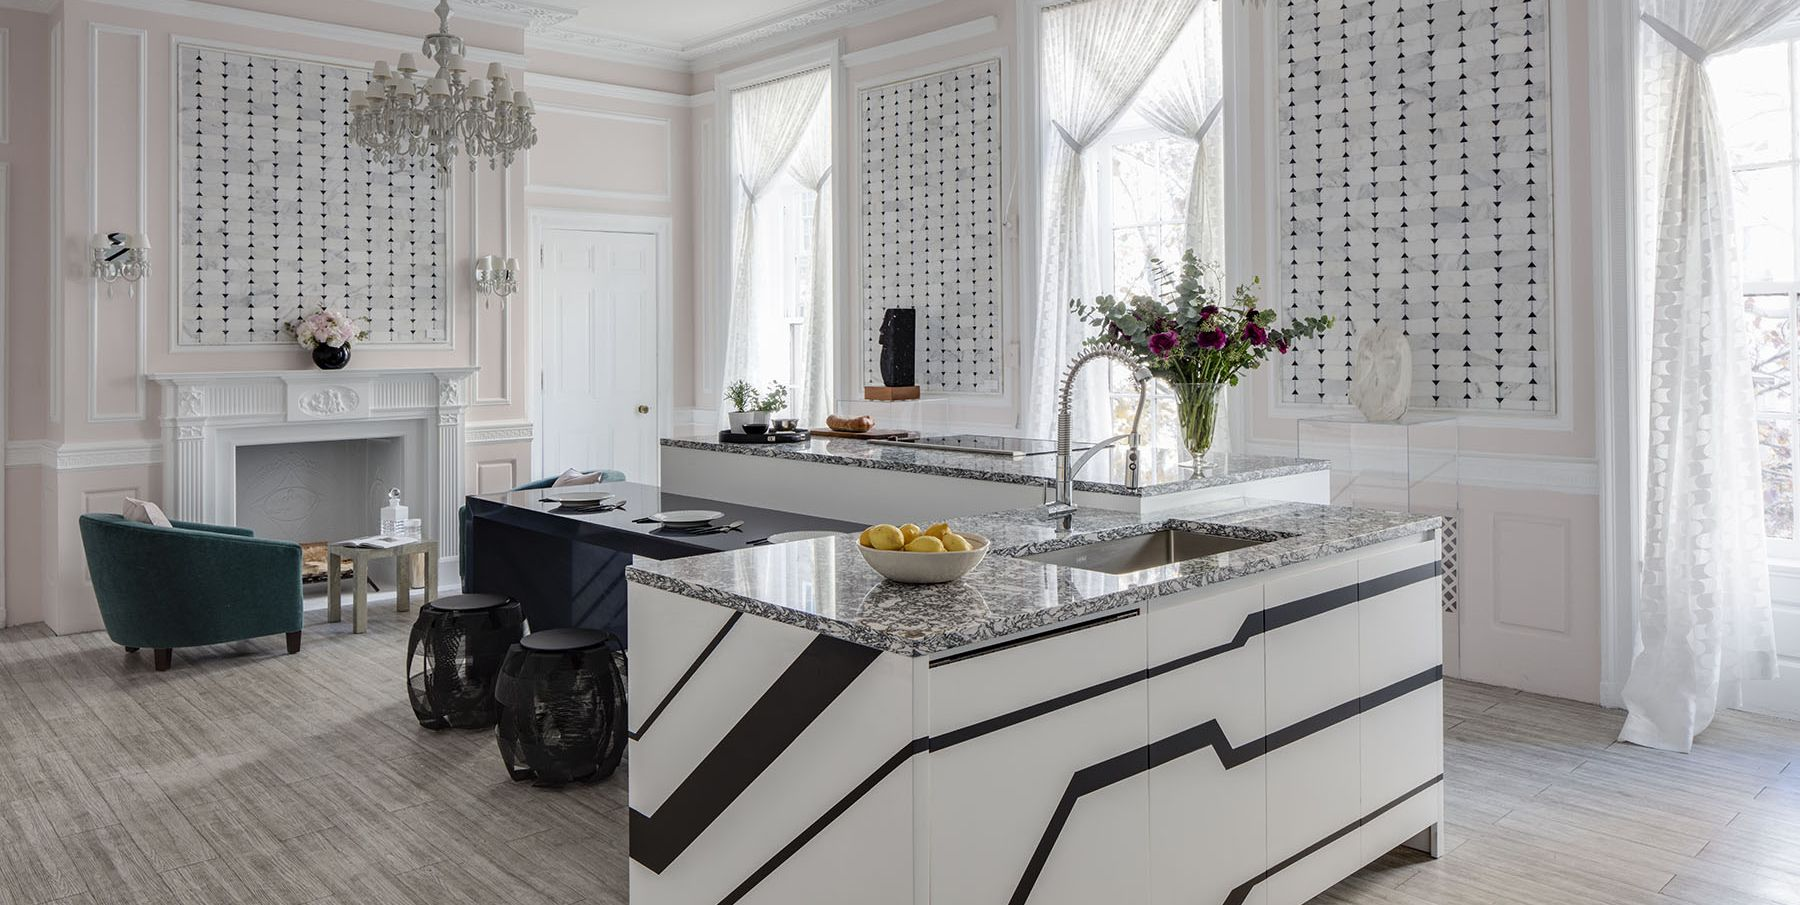 Best Small Kitchen Designs Design Ideas For Tiny Kitchens